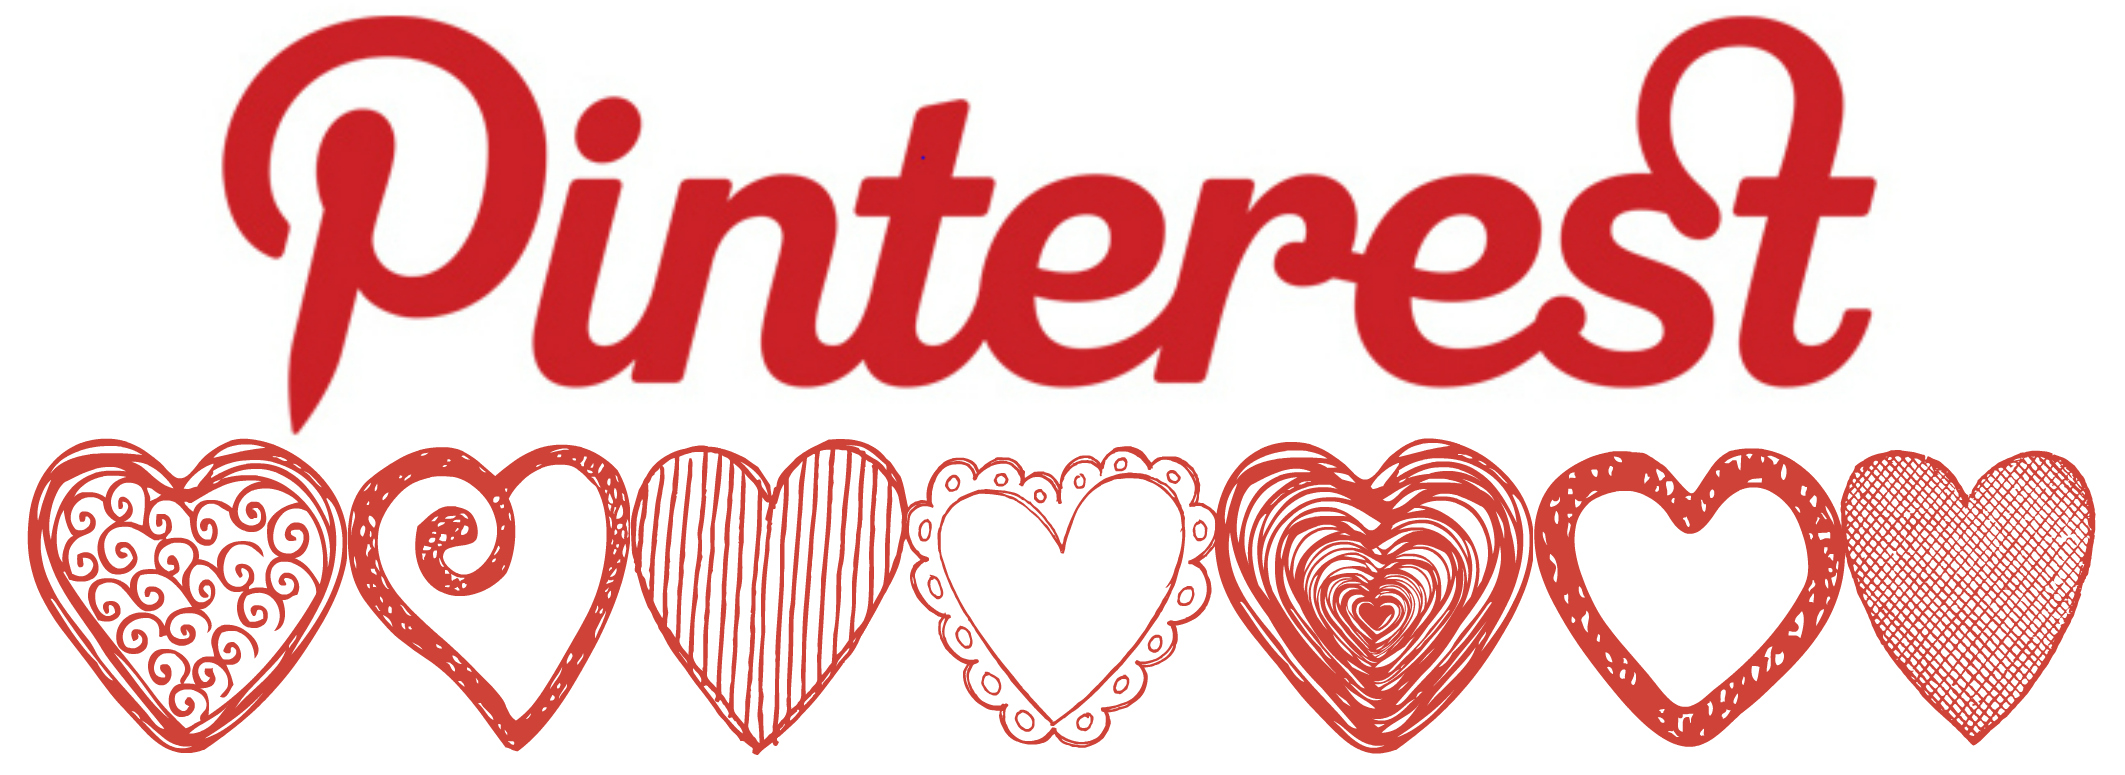 What takes your Pinterest?